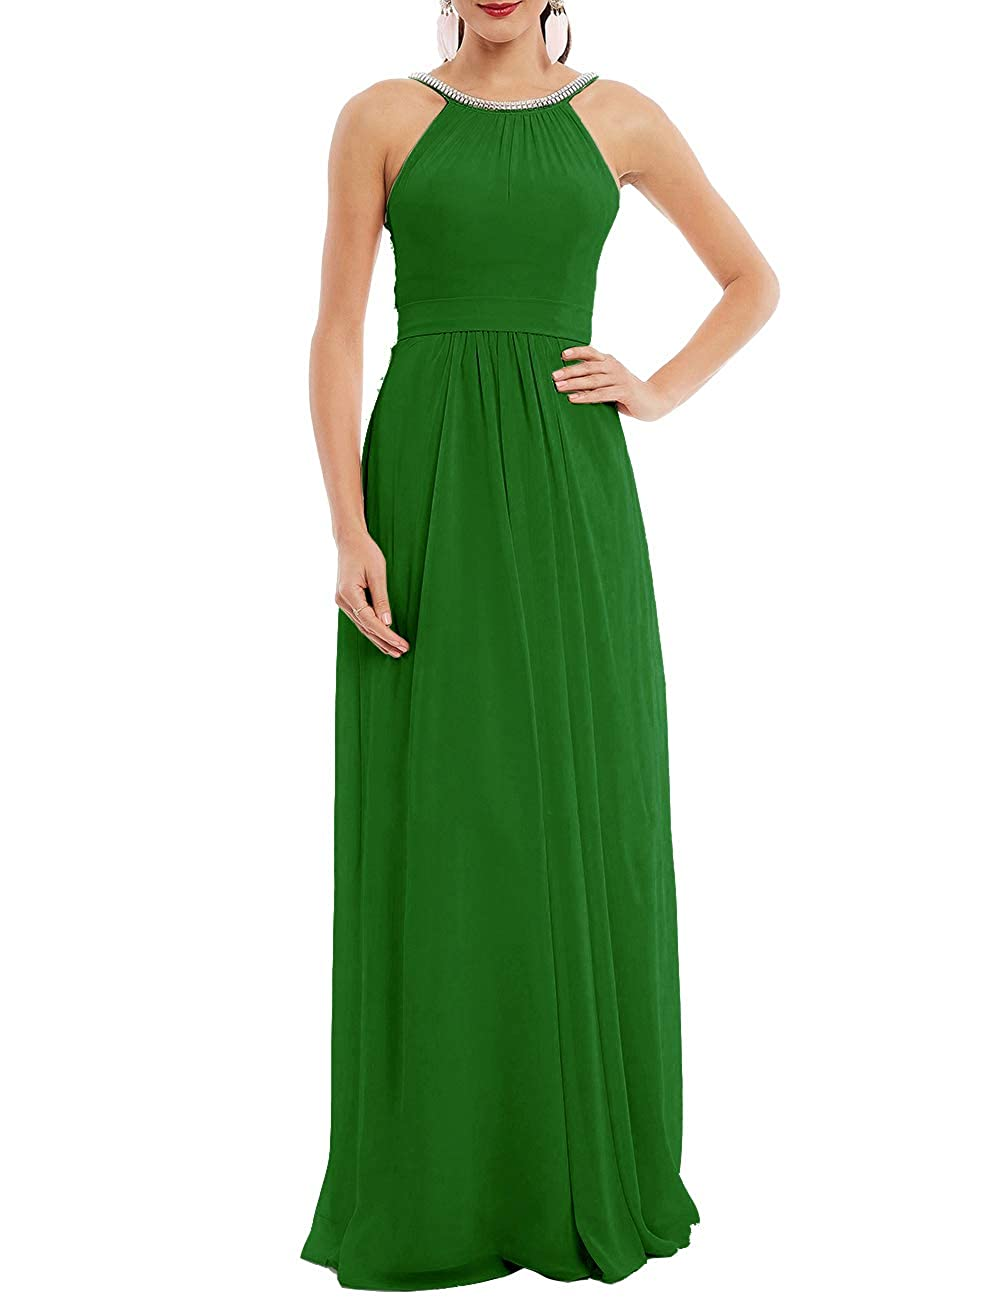 Halter Formal Evening Prom Gowns Long Chiffon Bridesmaid Dresses A-Line Beaded